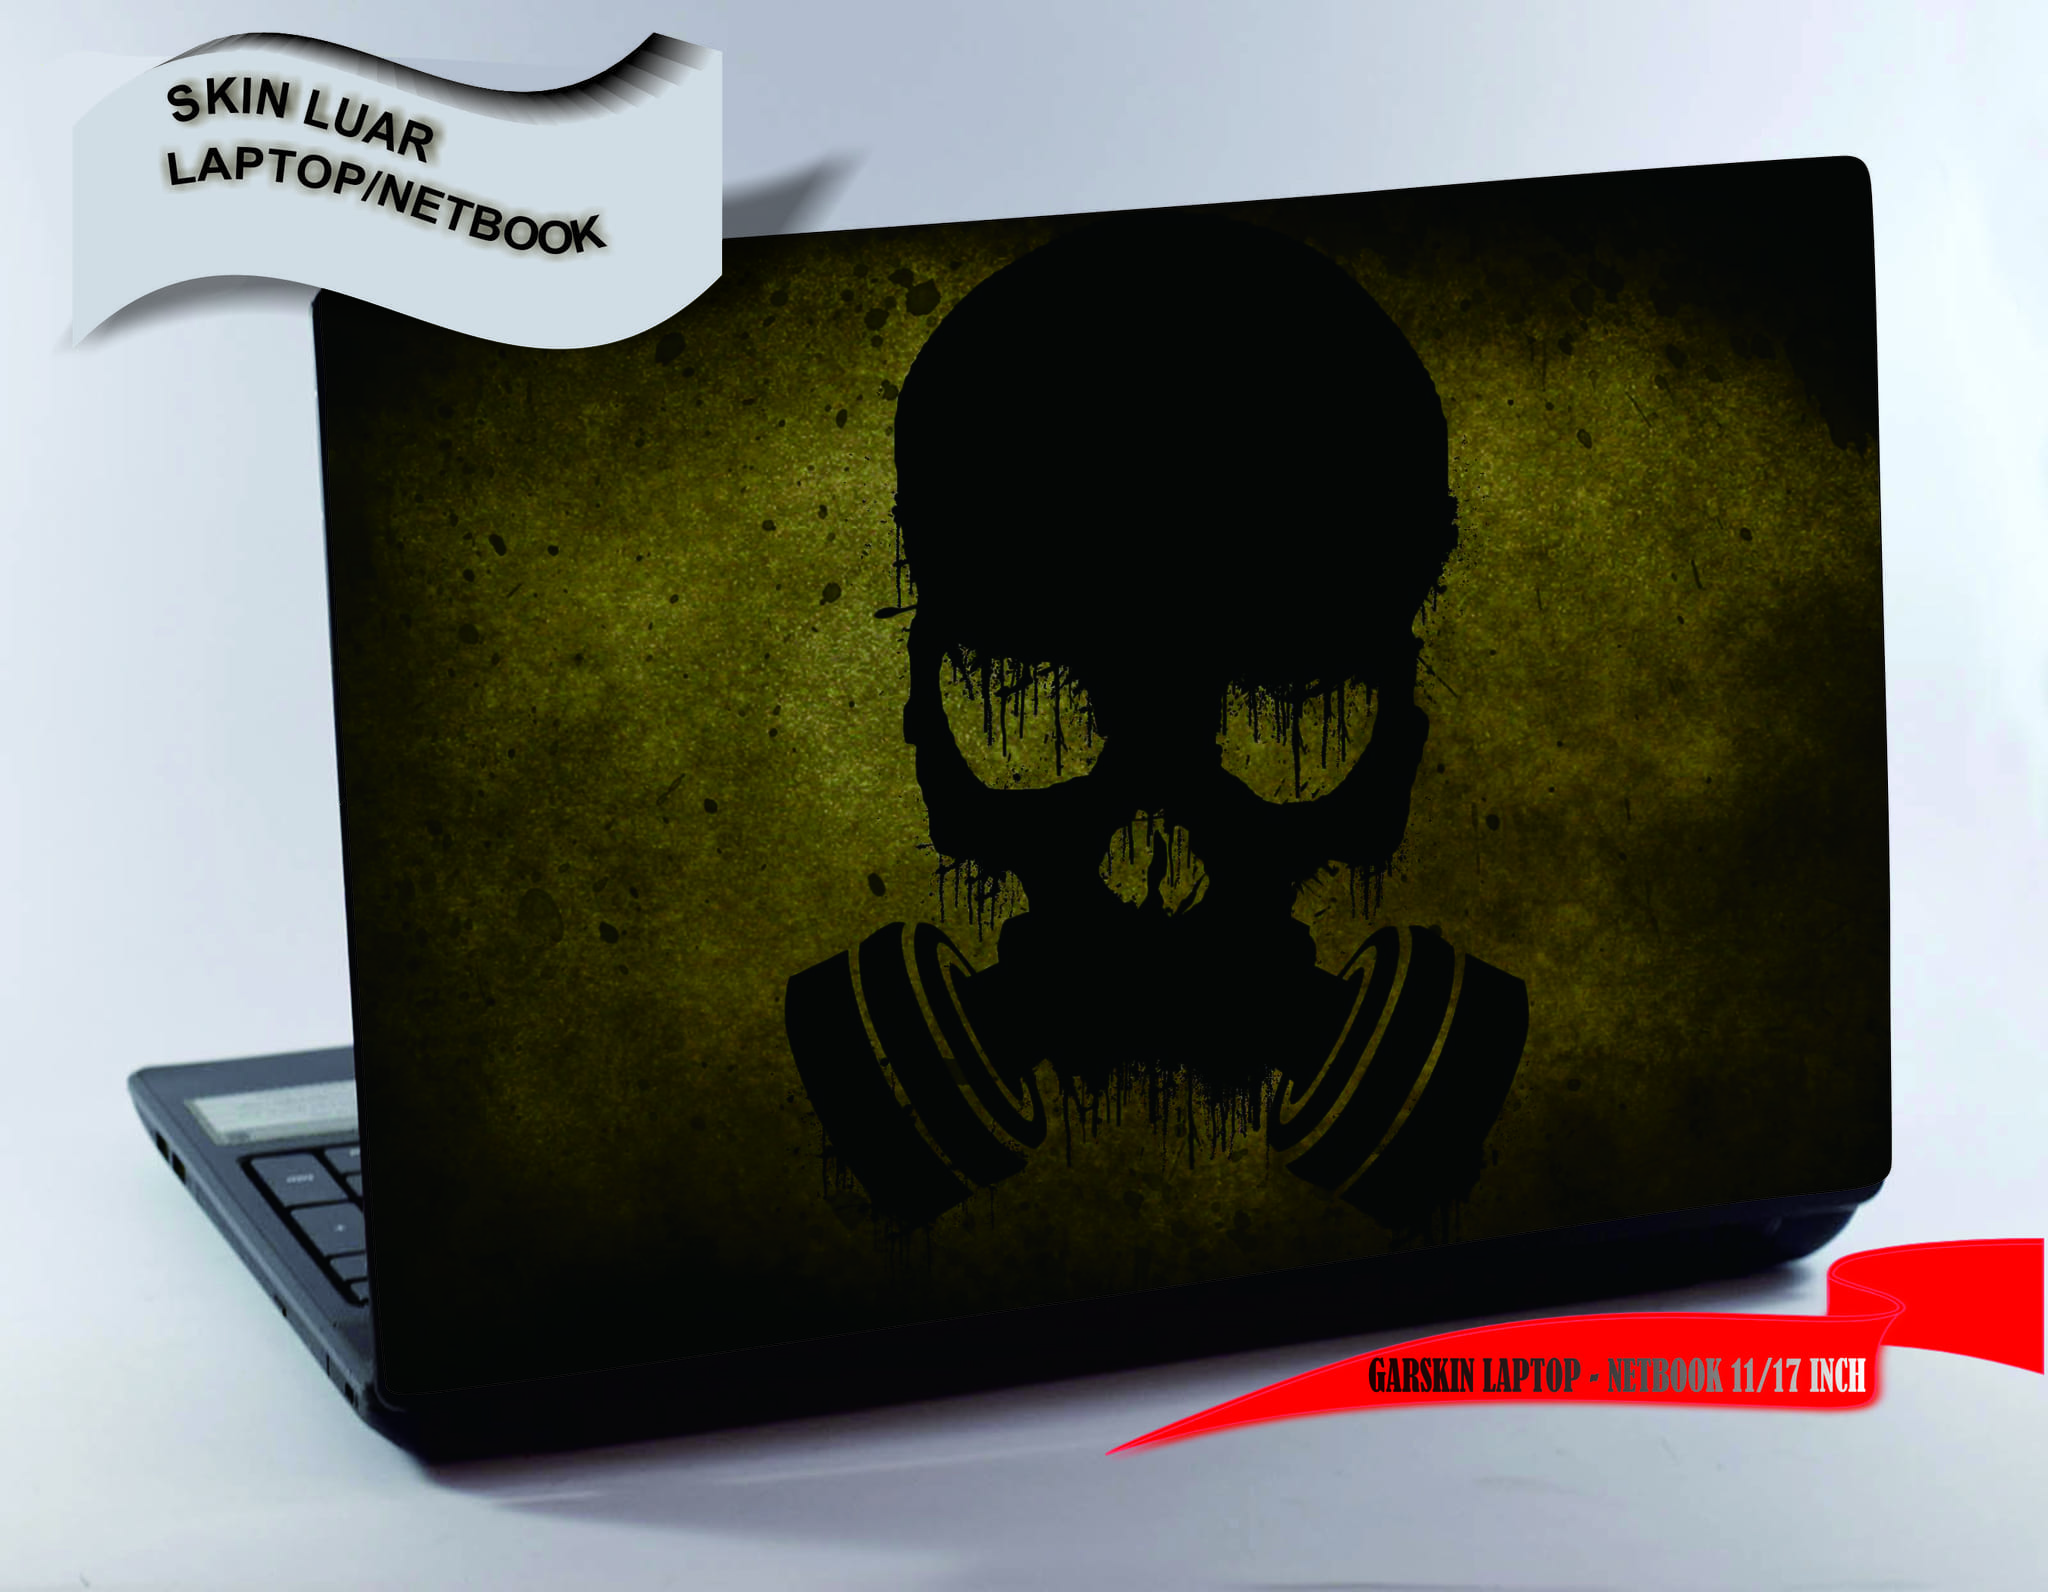 Garskin luar Laptop/Netbook - Black Mask